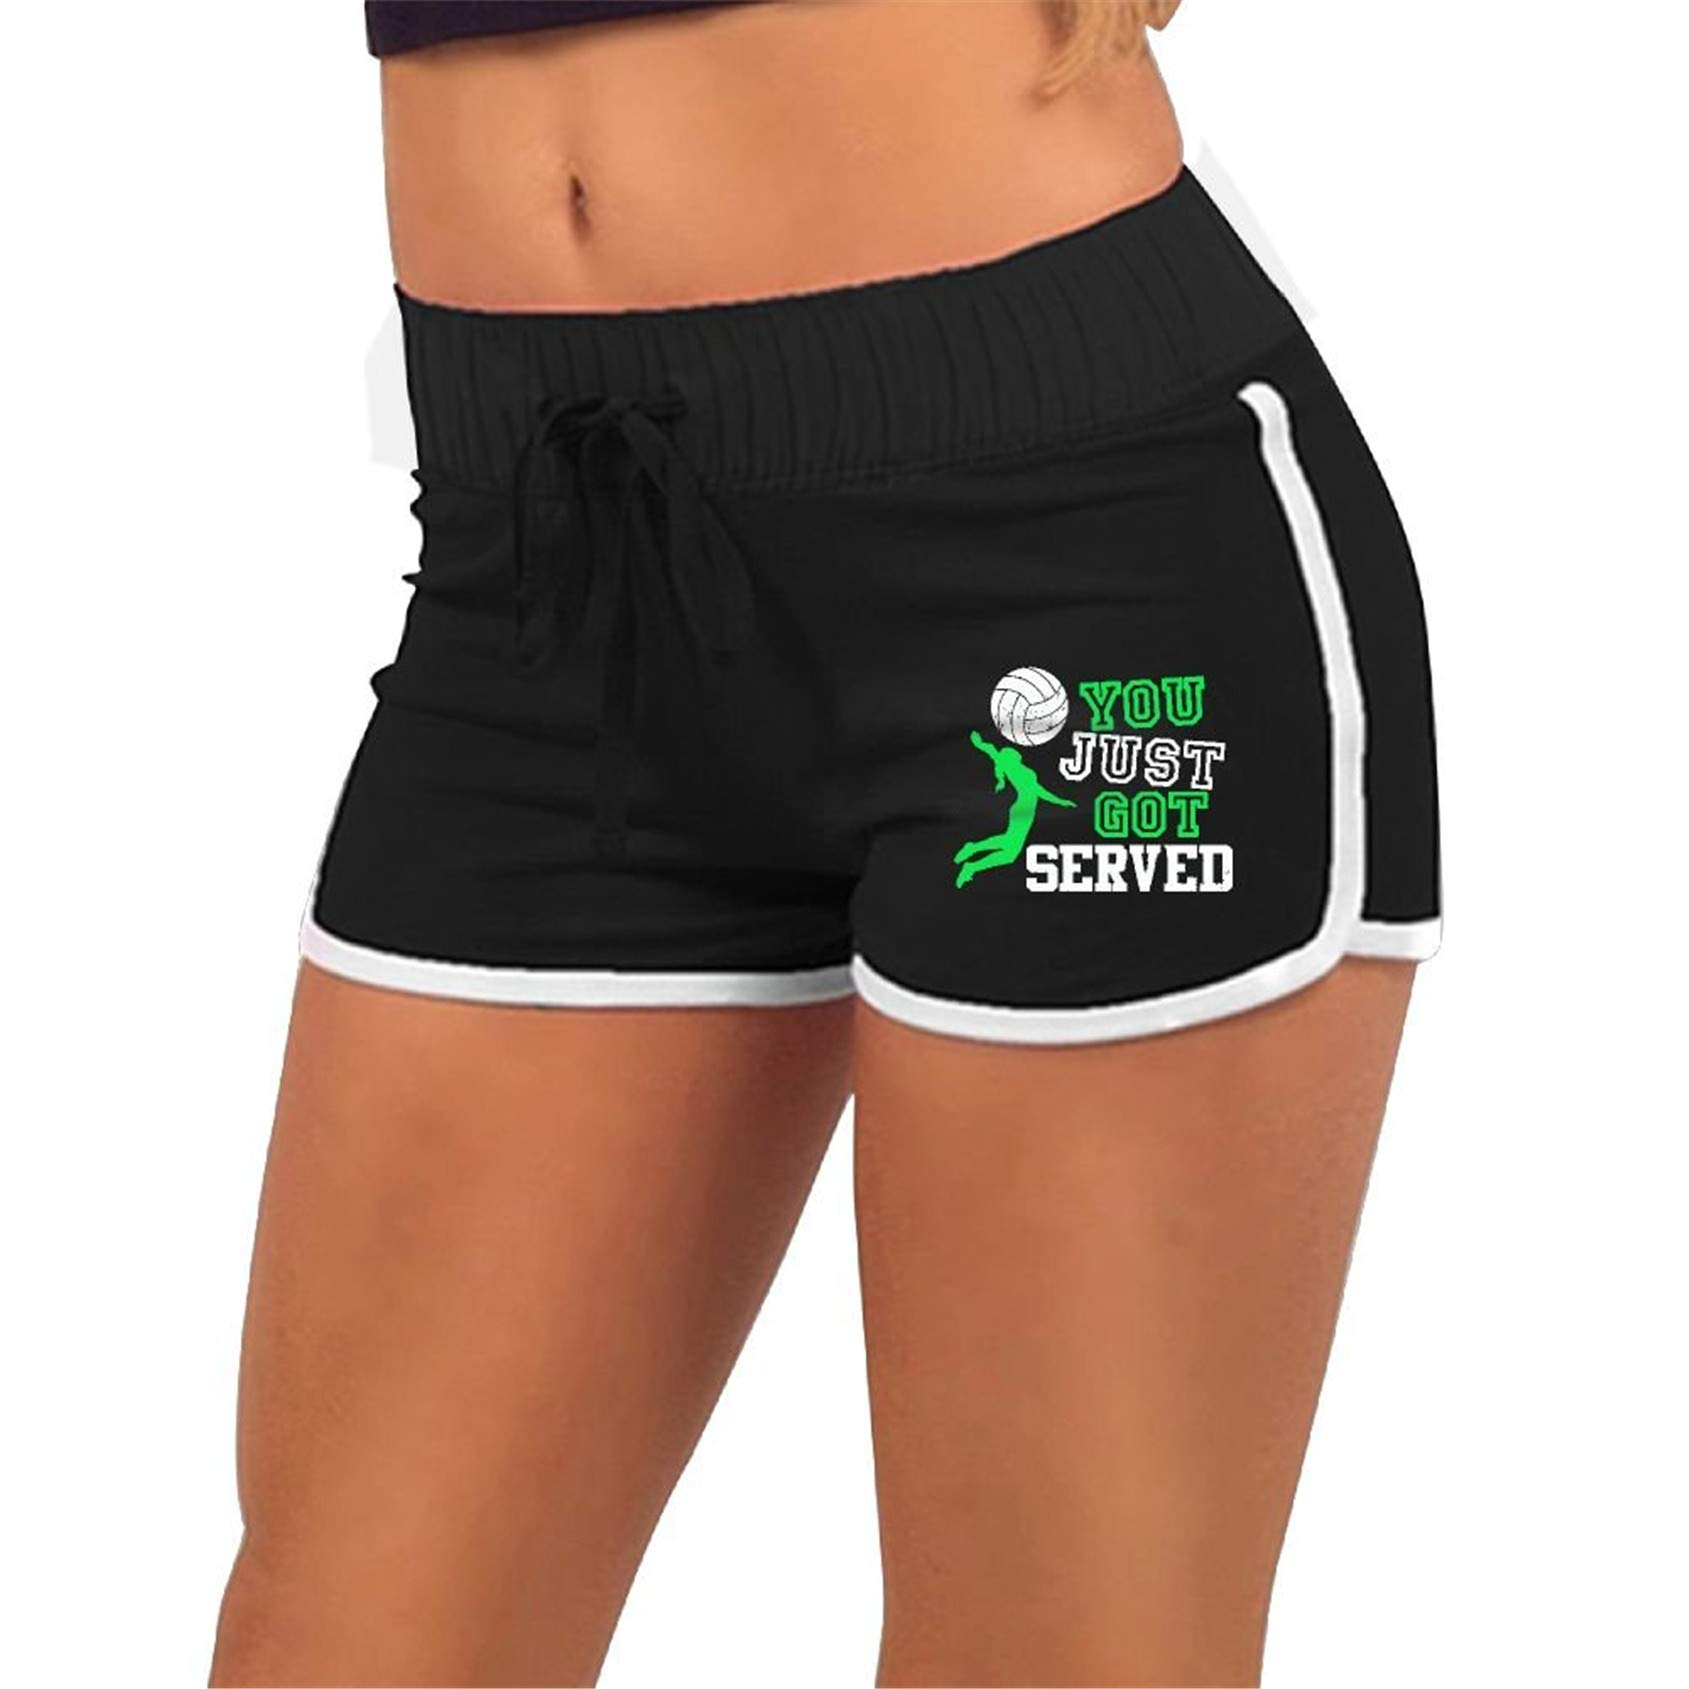 You Just Got Served Volleyball,Athletic,Running,Exercise Short Pants with,Athletic Elastic Waist Womens Sports Shorts